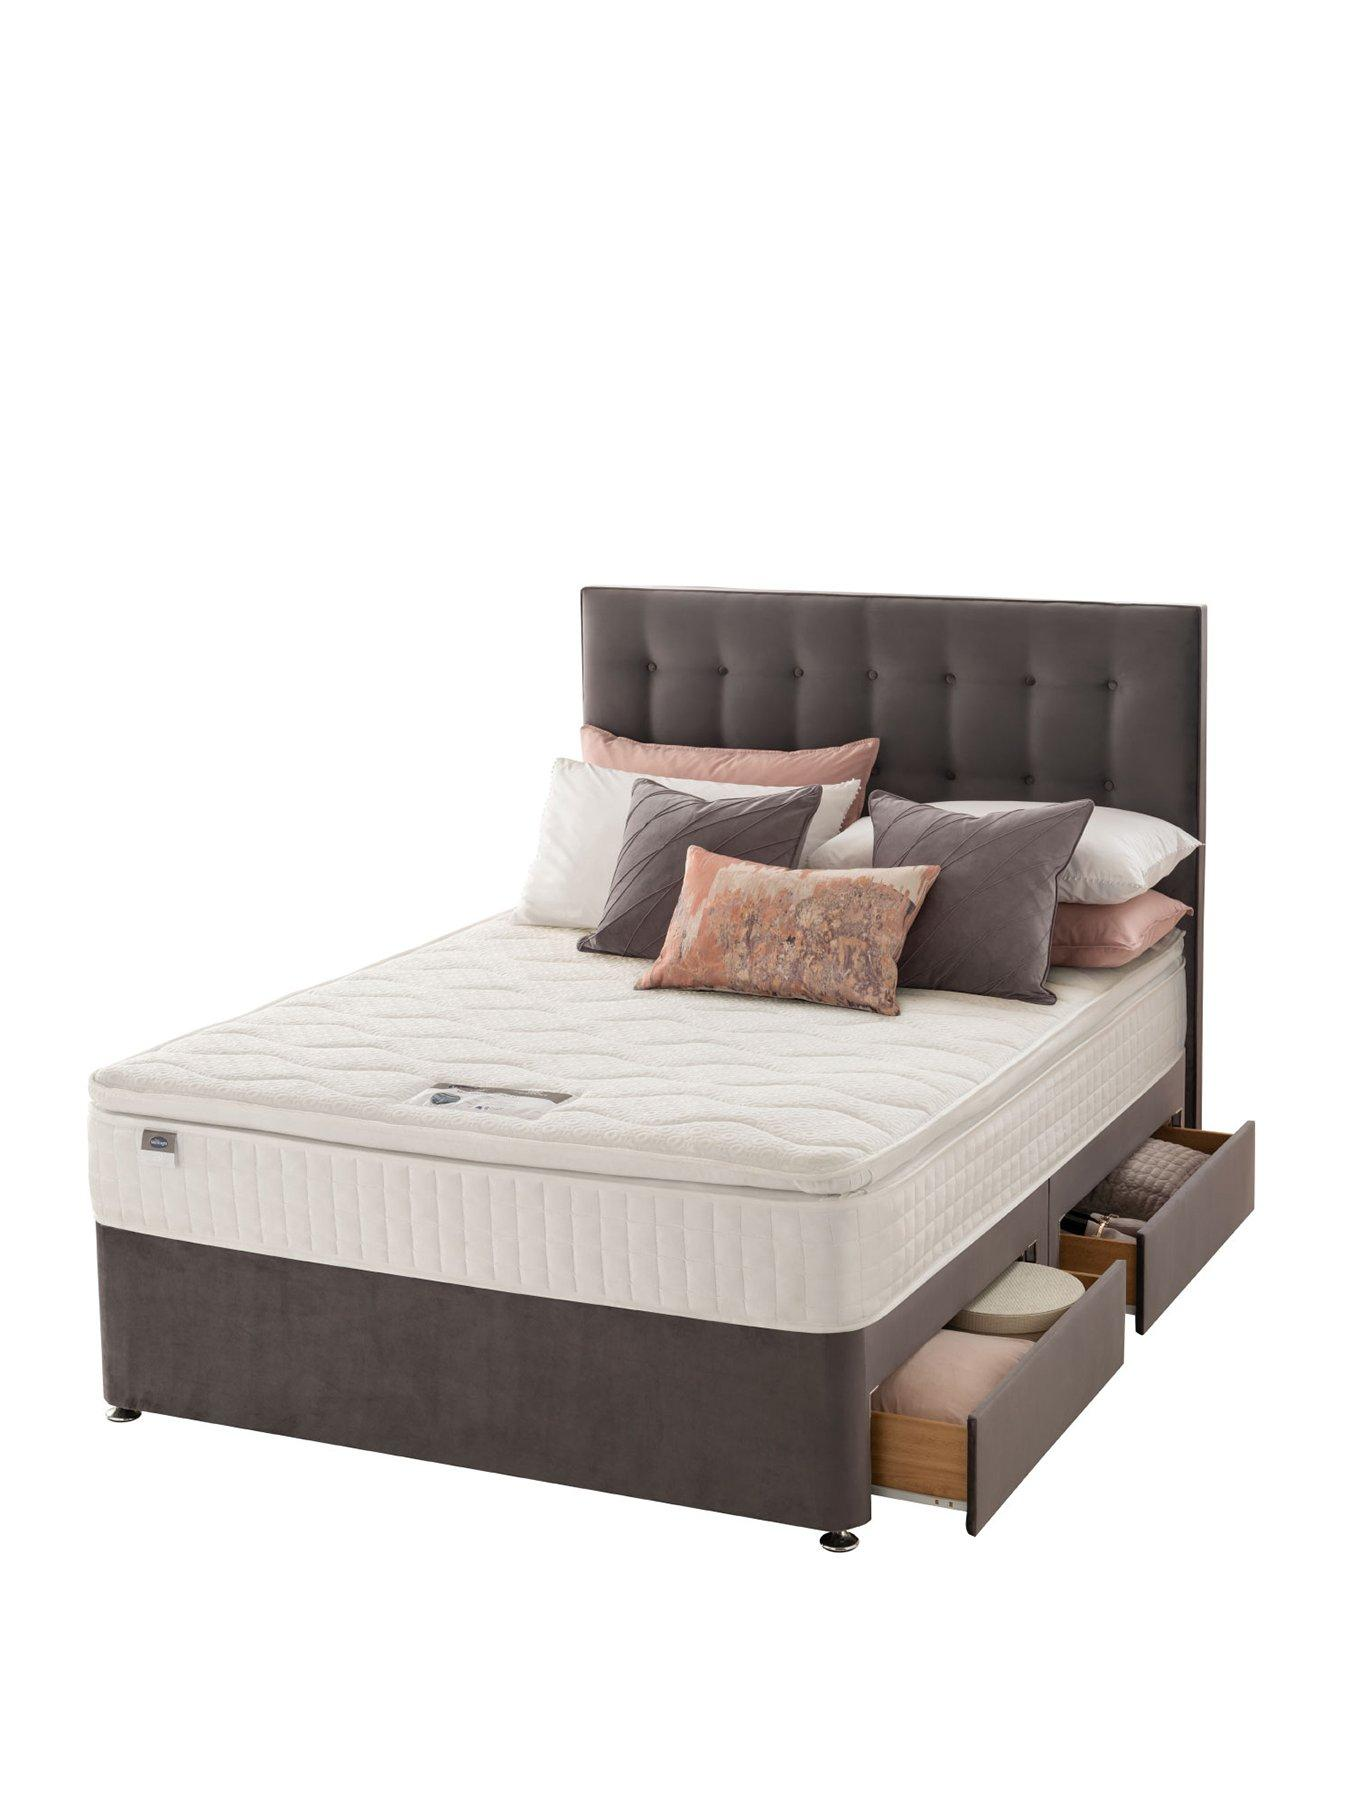 beds storage beds double king